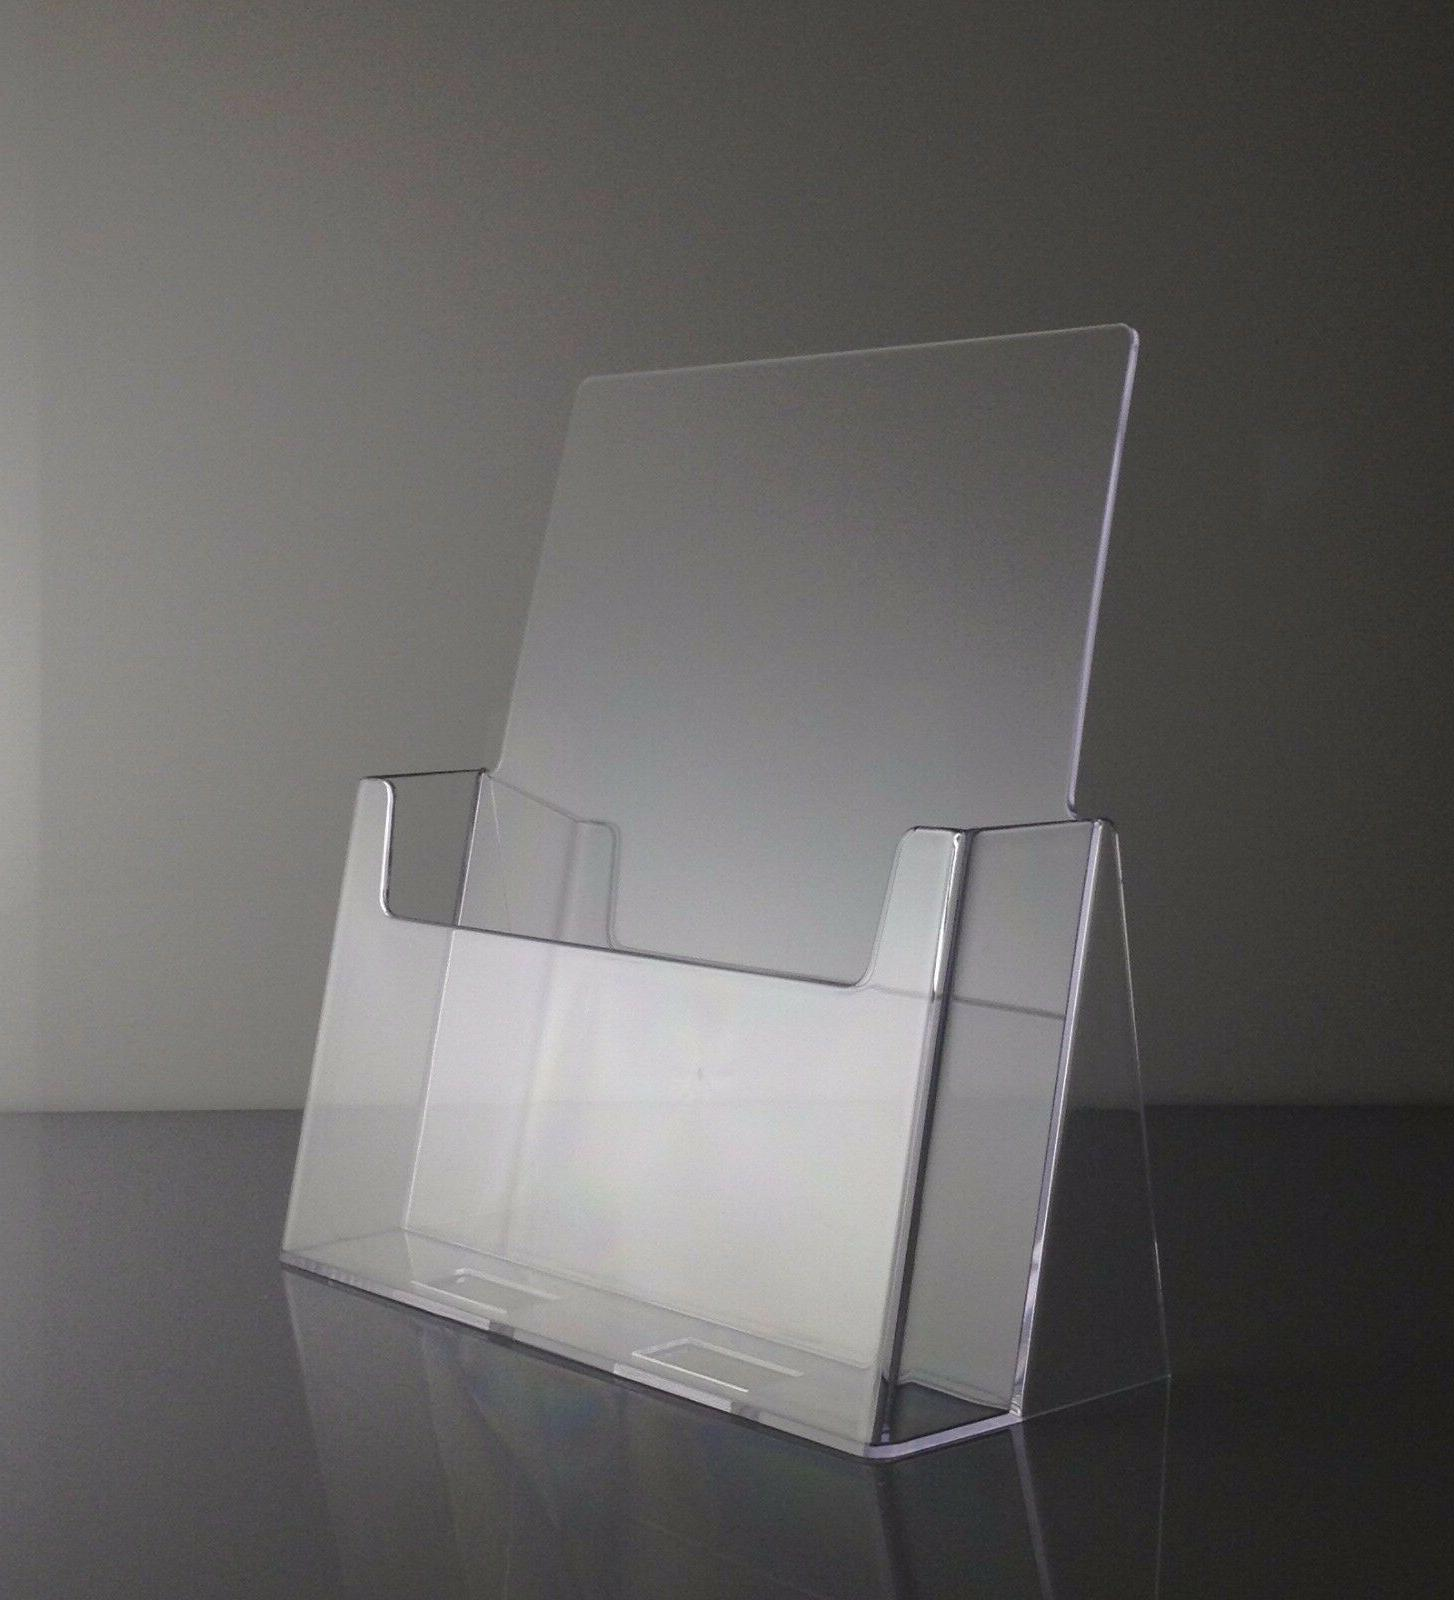 Full Page Brochure Holders 8.5 x 11 Clear Acrylic Display St